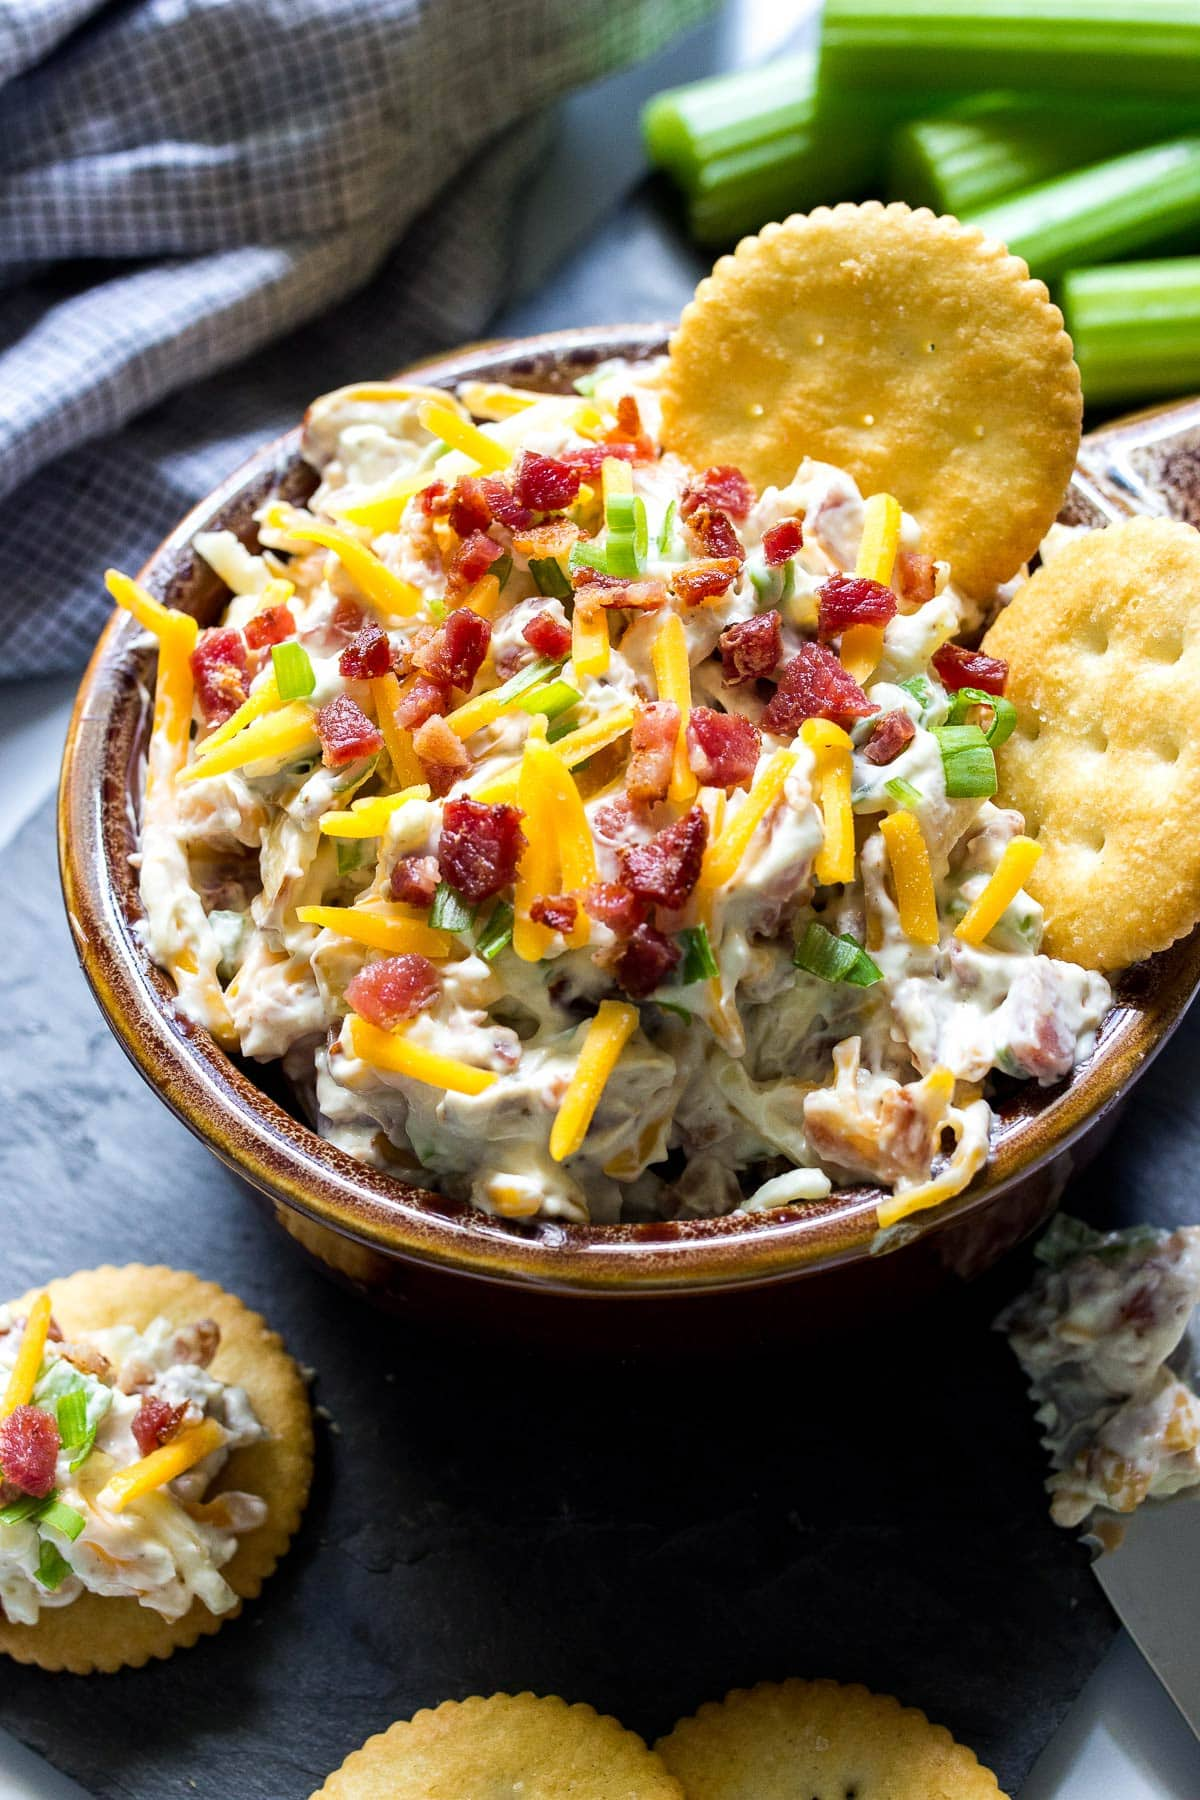 Million dollar dip in a brown bowl with some crackers and topped with shredded cheddar cheese, bacon bits and green onions.